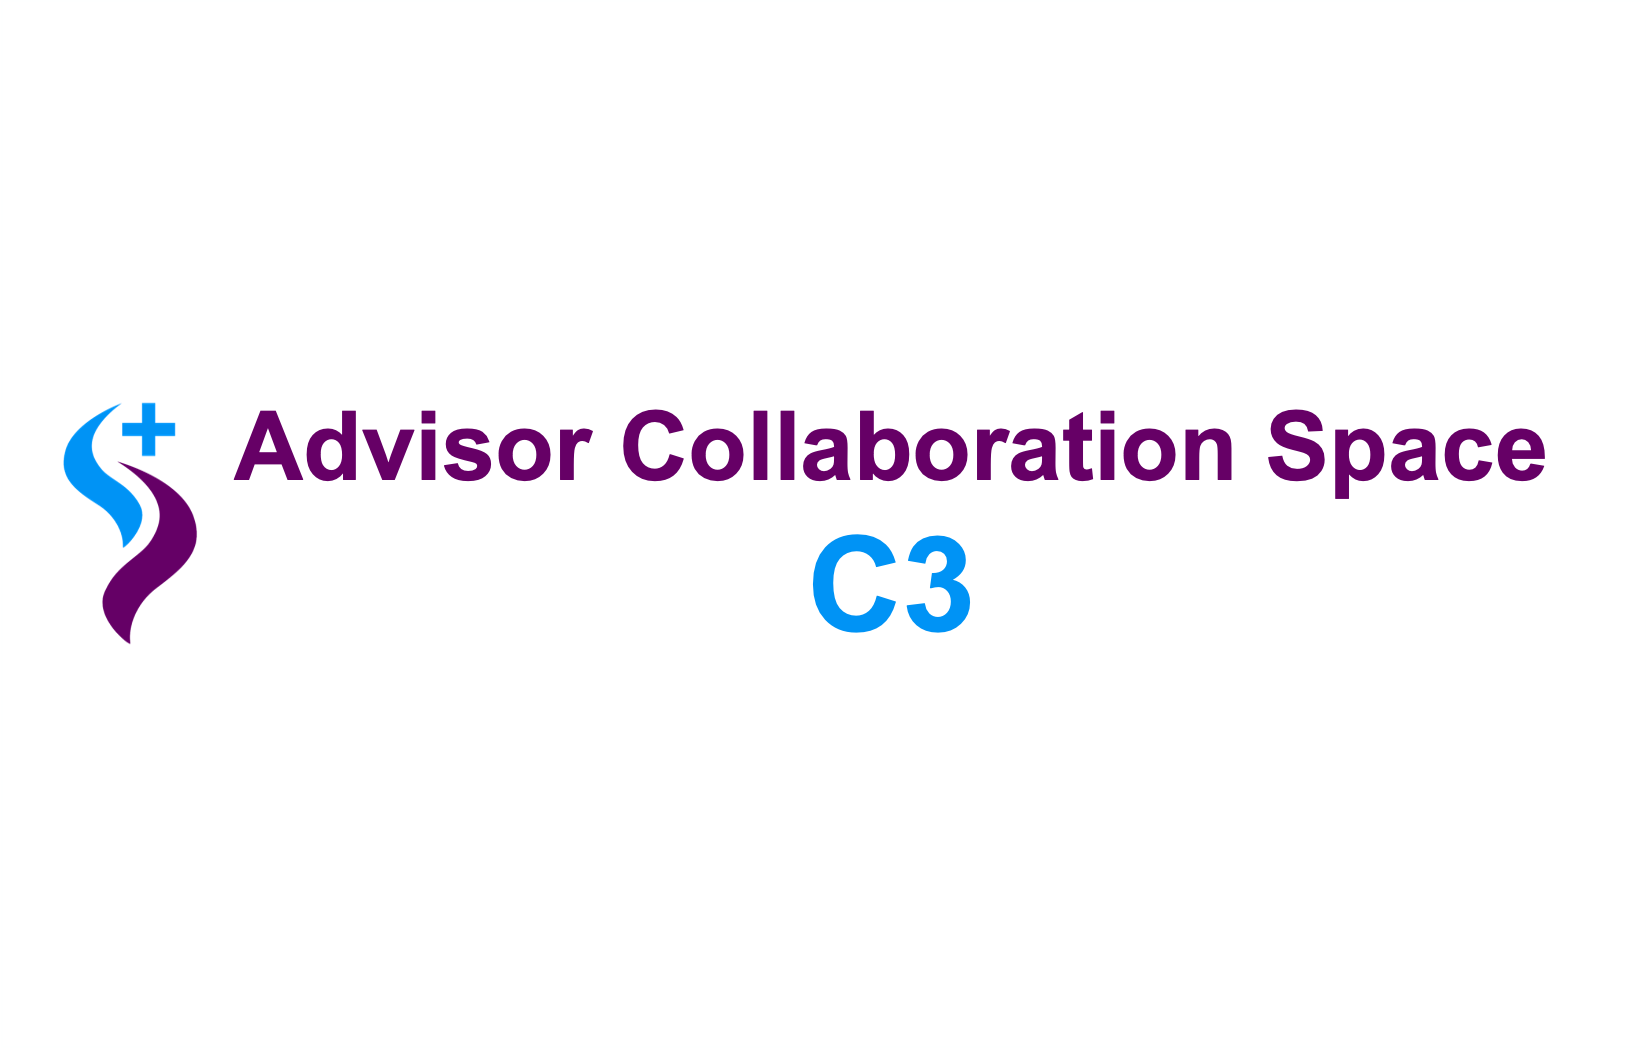 Advisor Collaboration Space - C3